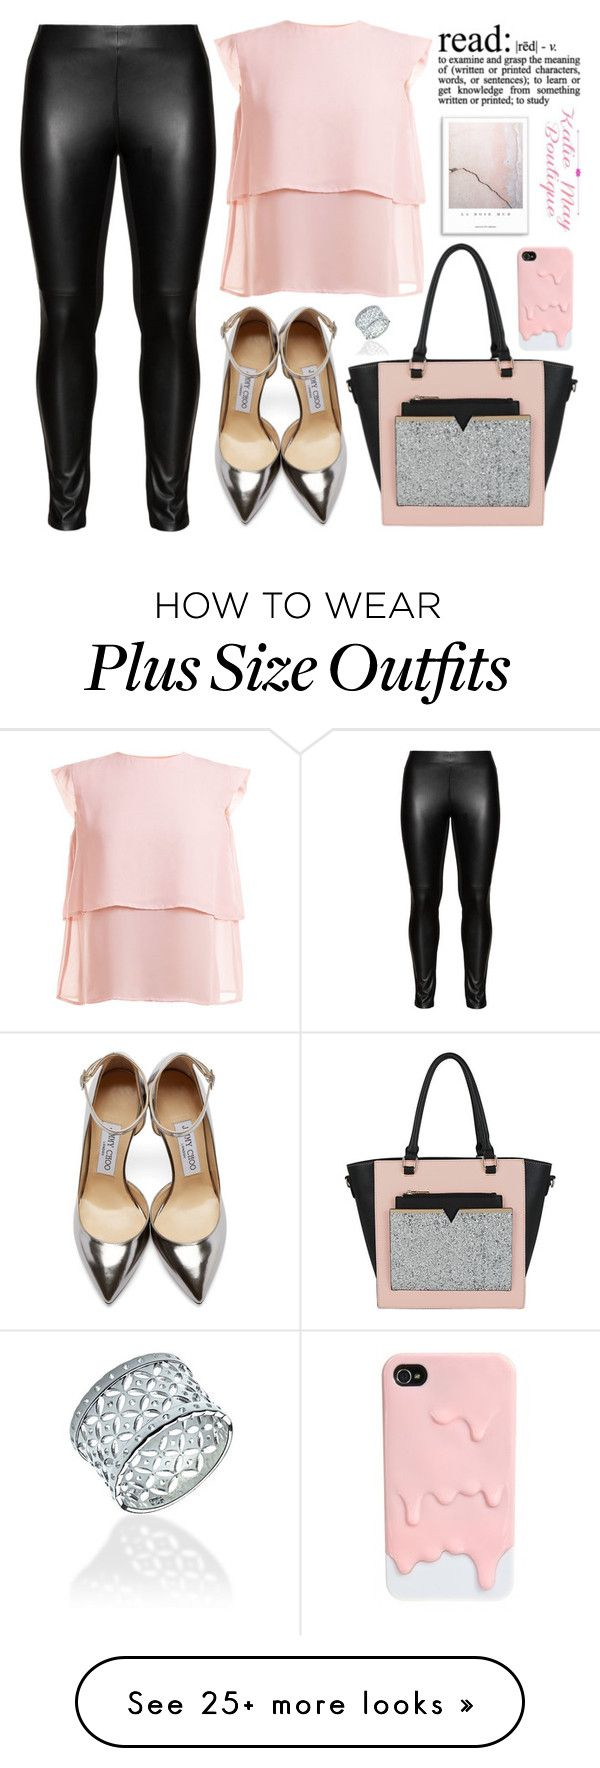 """""""Katie May Boutique #9"""" by edita-m on Polyvore featuring Studio, Livlov, Jimmy Choo and KatieMayBoutique"""